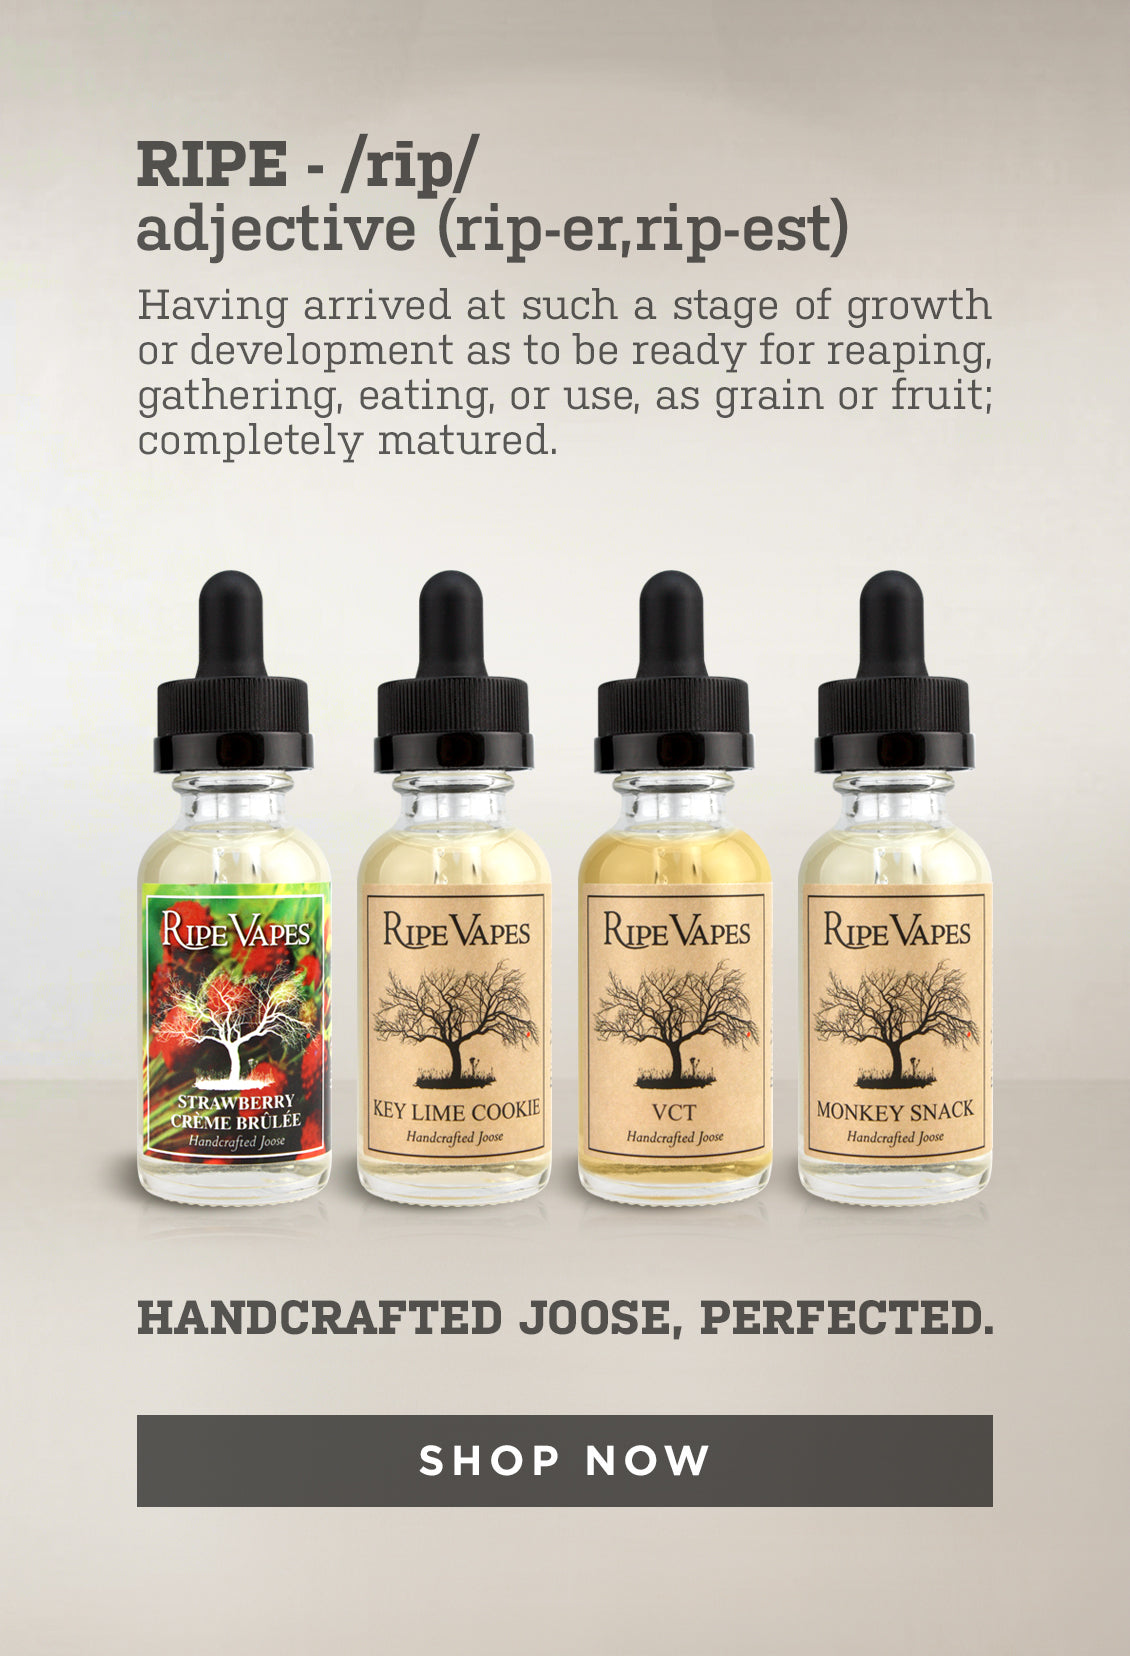 Handcrafted joose, perfected. Shop now!